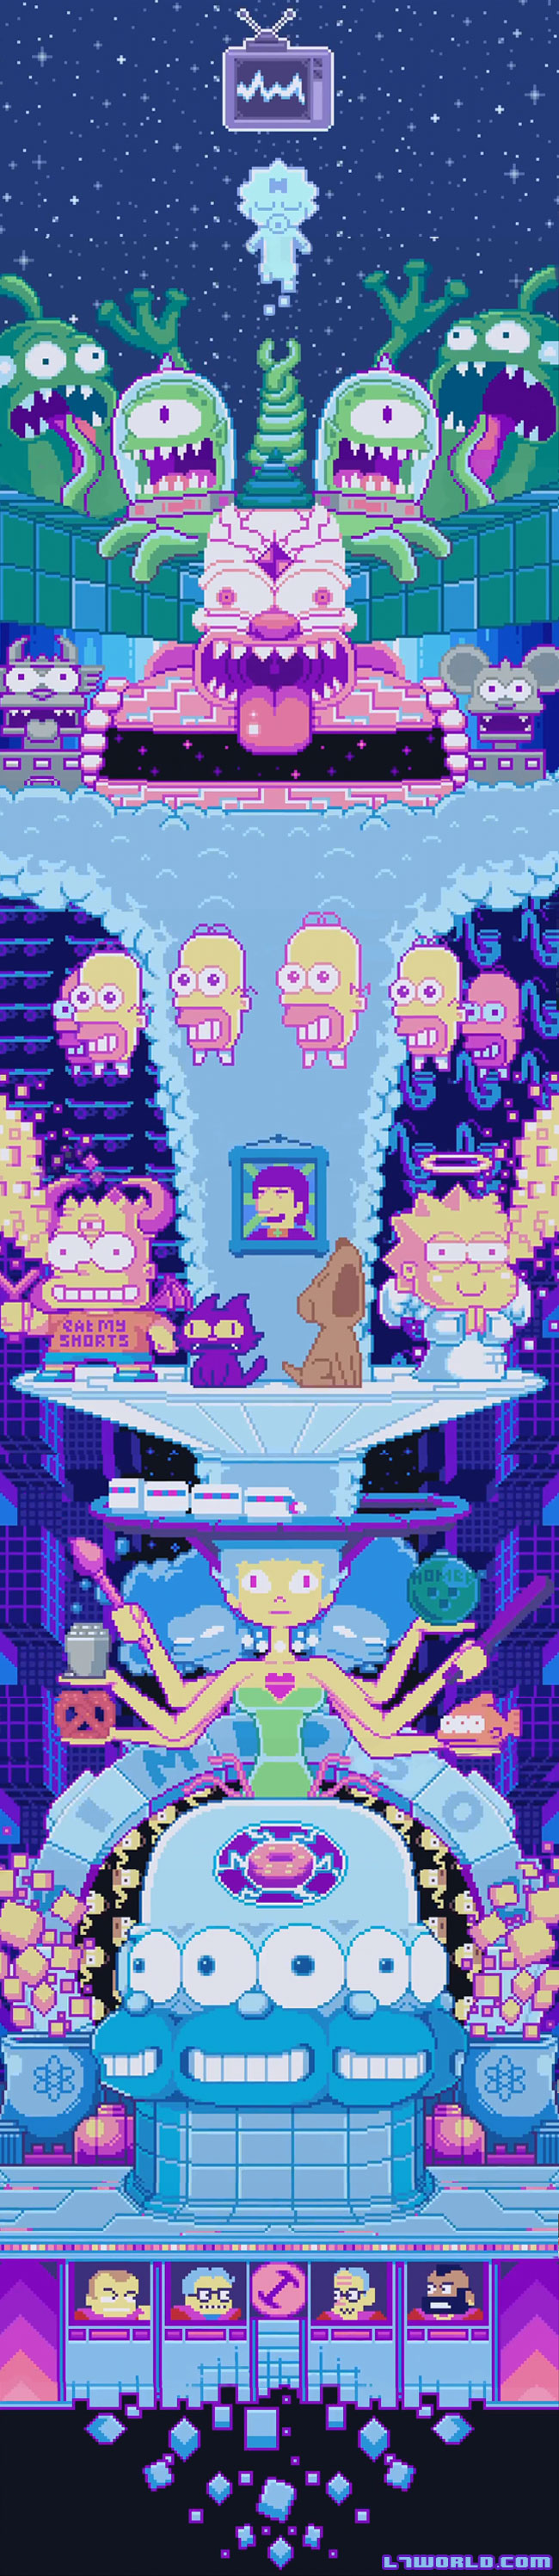 Simpsons couch gag features pixel art opening Paul Robertson